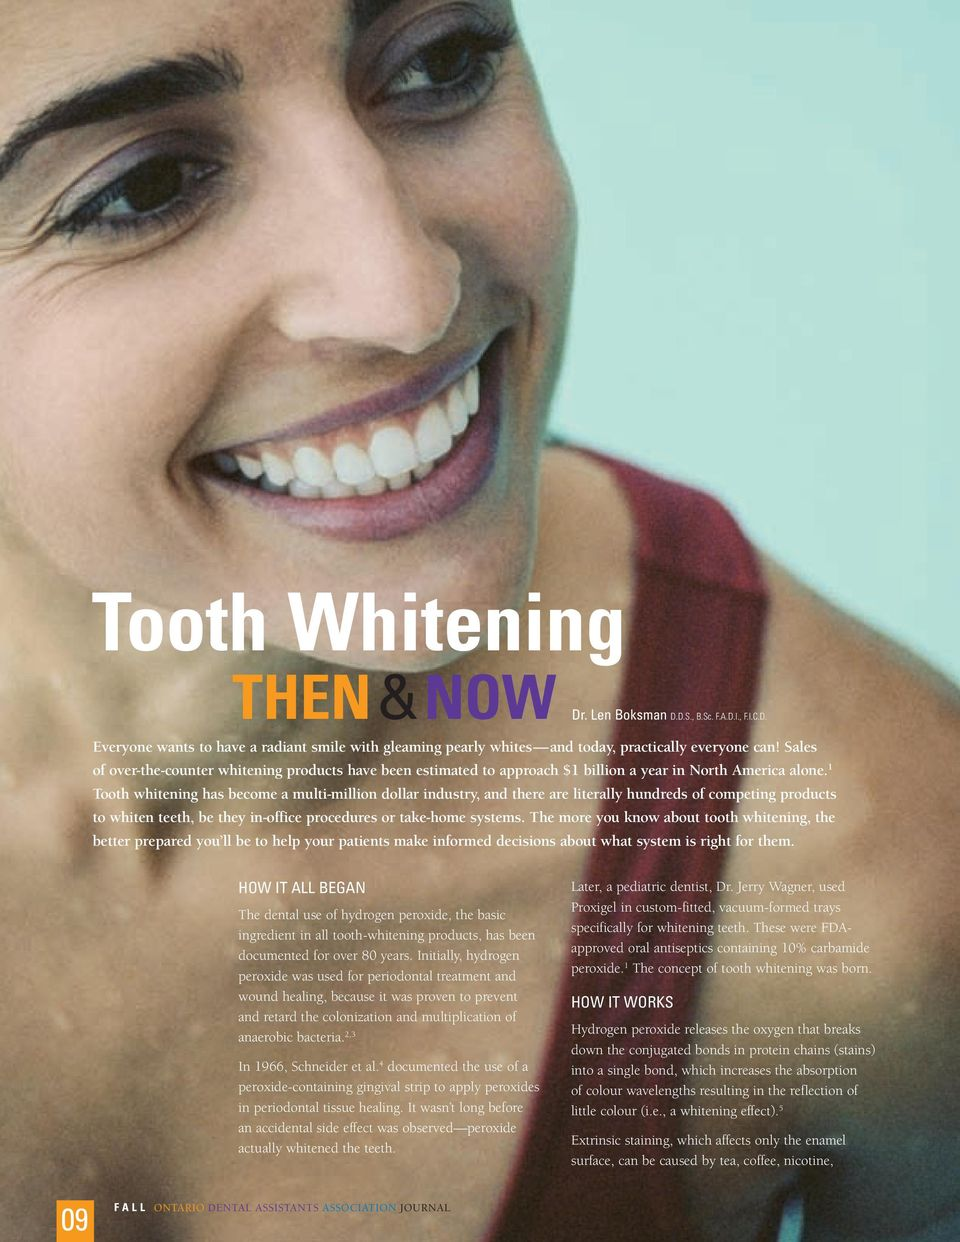 1 Tooth whitening has become a multi-million dollar industry, and there are literally hundreds of competing products to whiten teeth, be they in-office procedures or take-home systems.